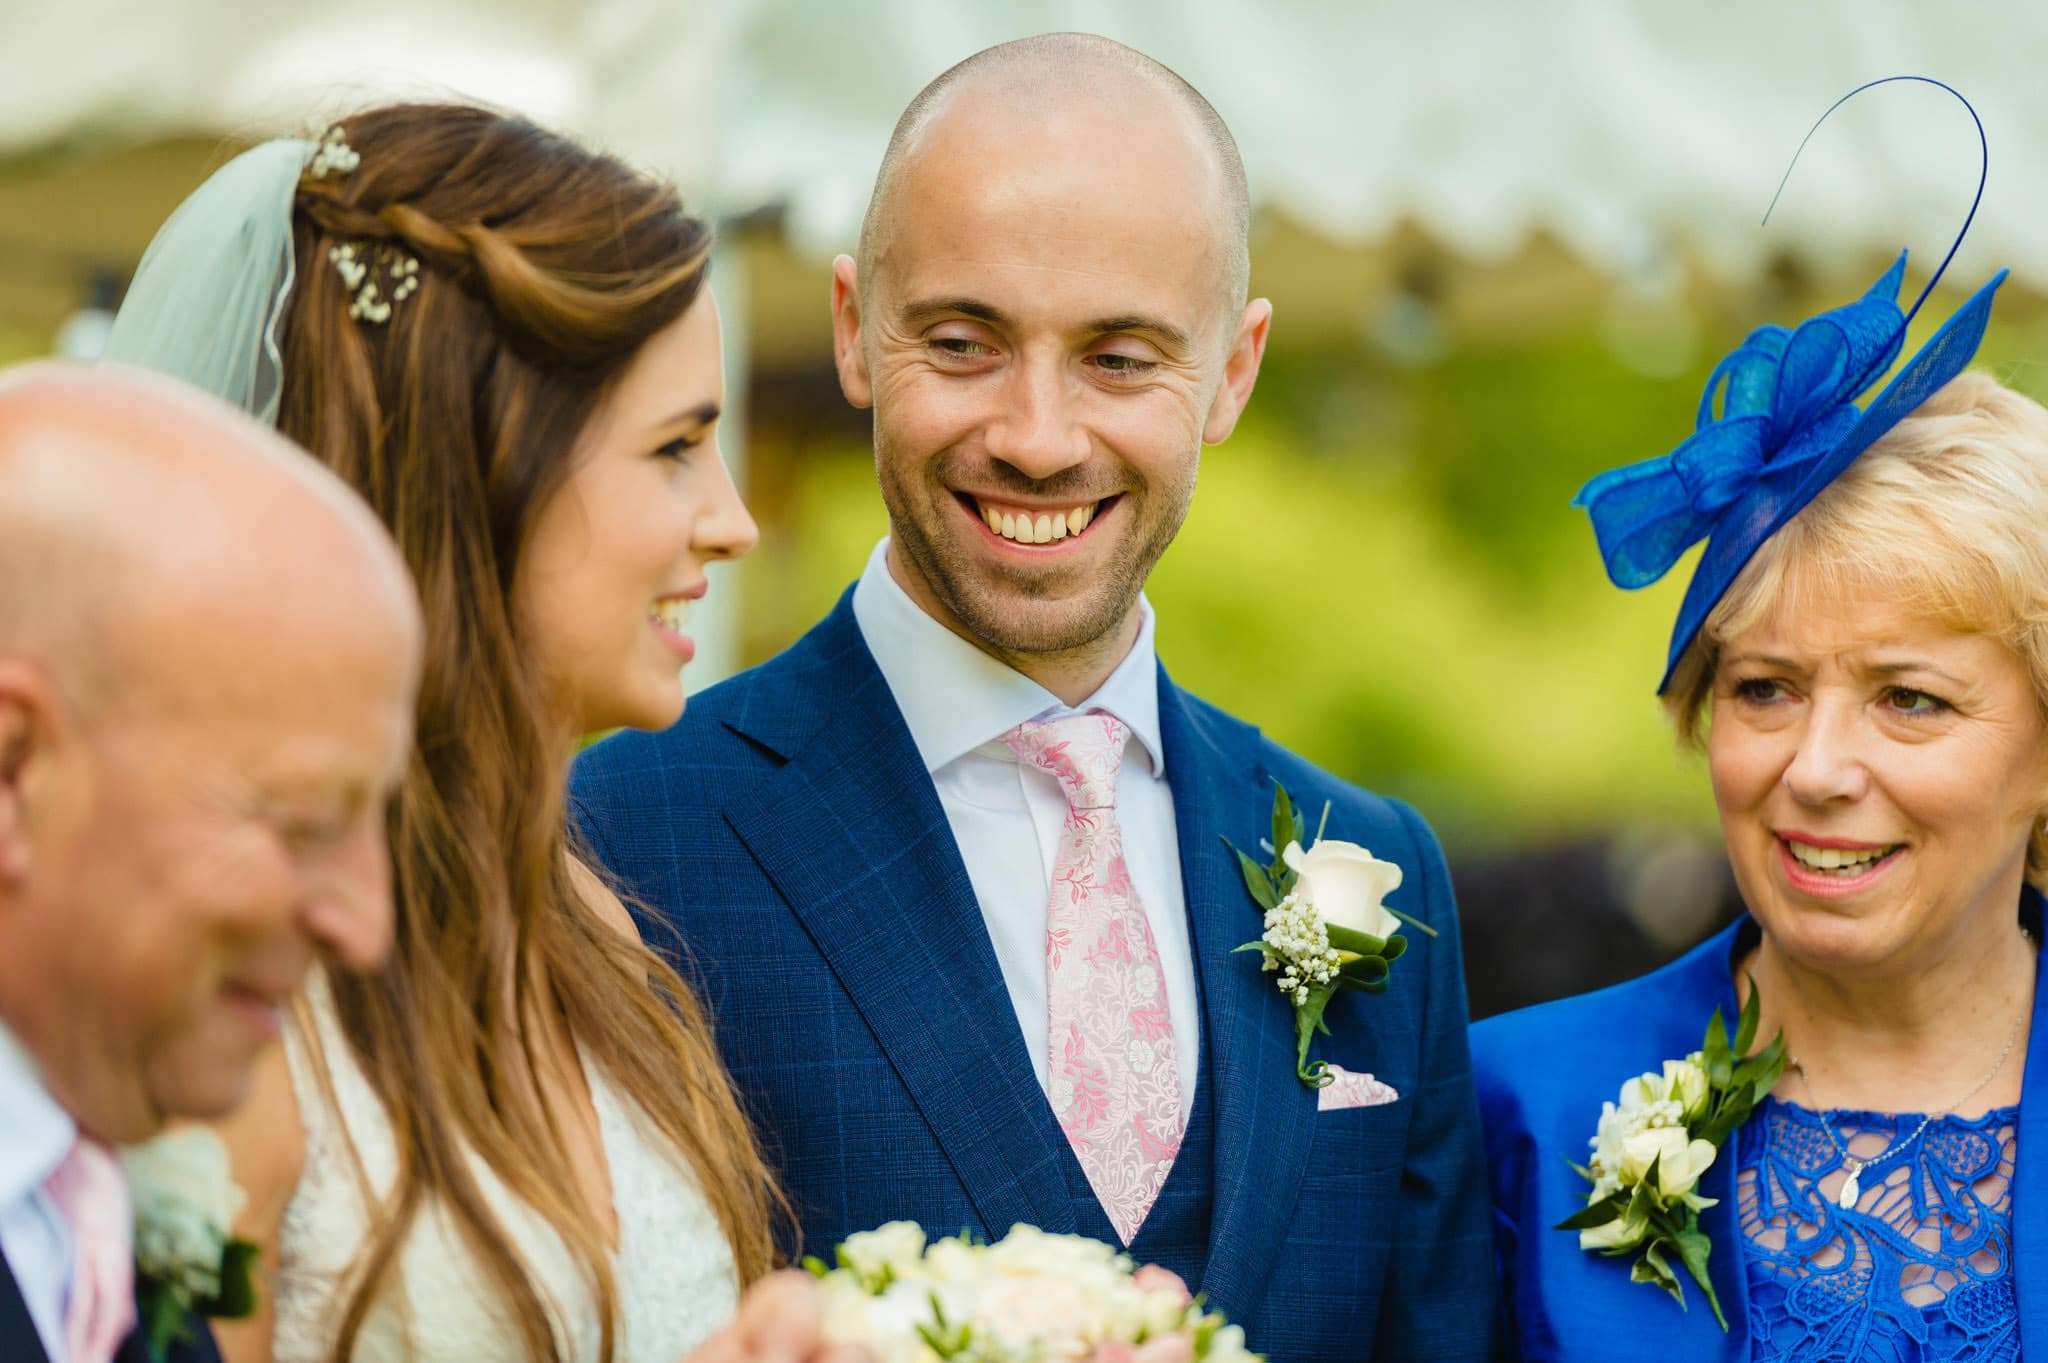 wedding at redhouse barn 101 - Wedding at Redhouse Barn in Stoke Prior, Worcestershire